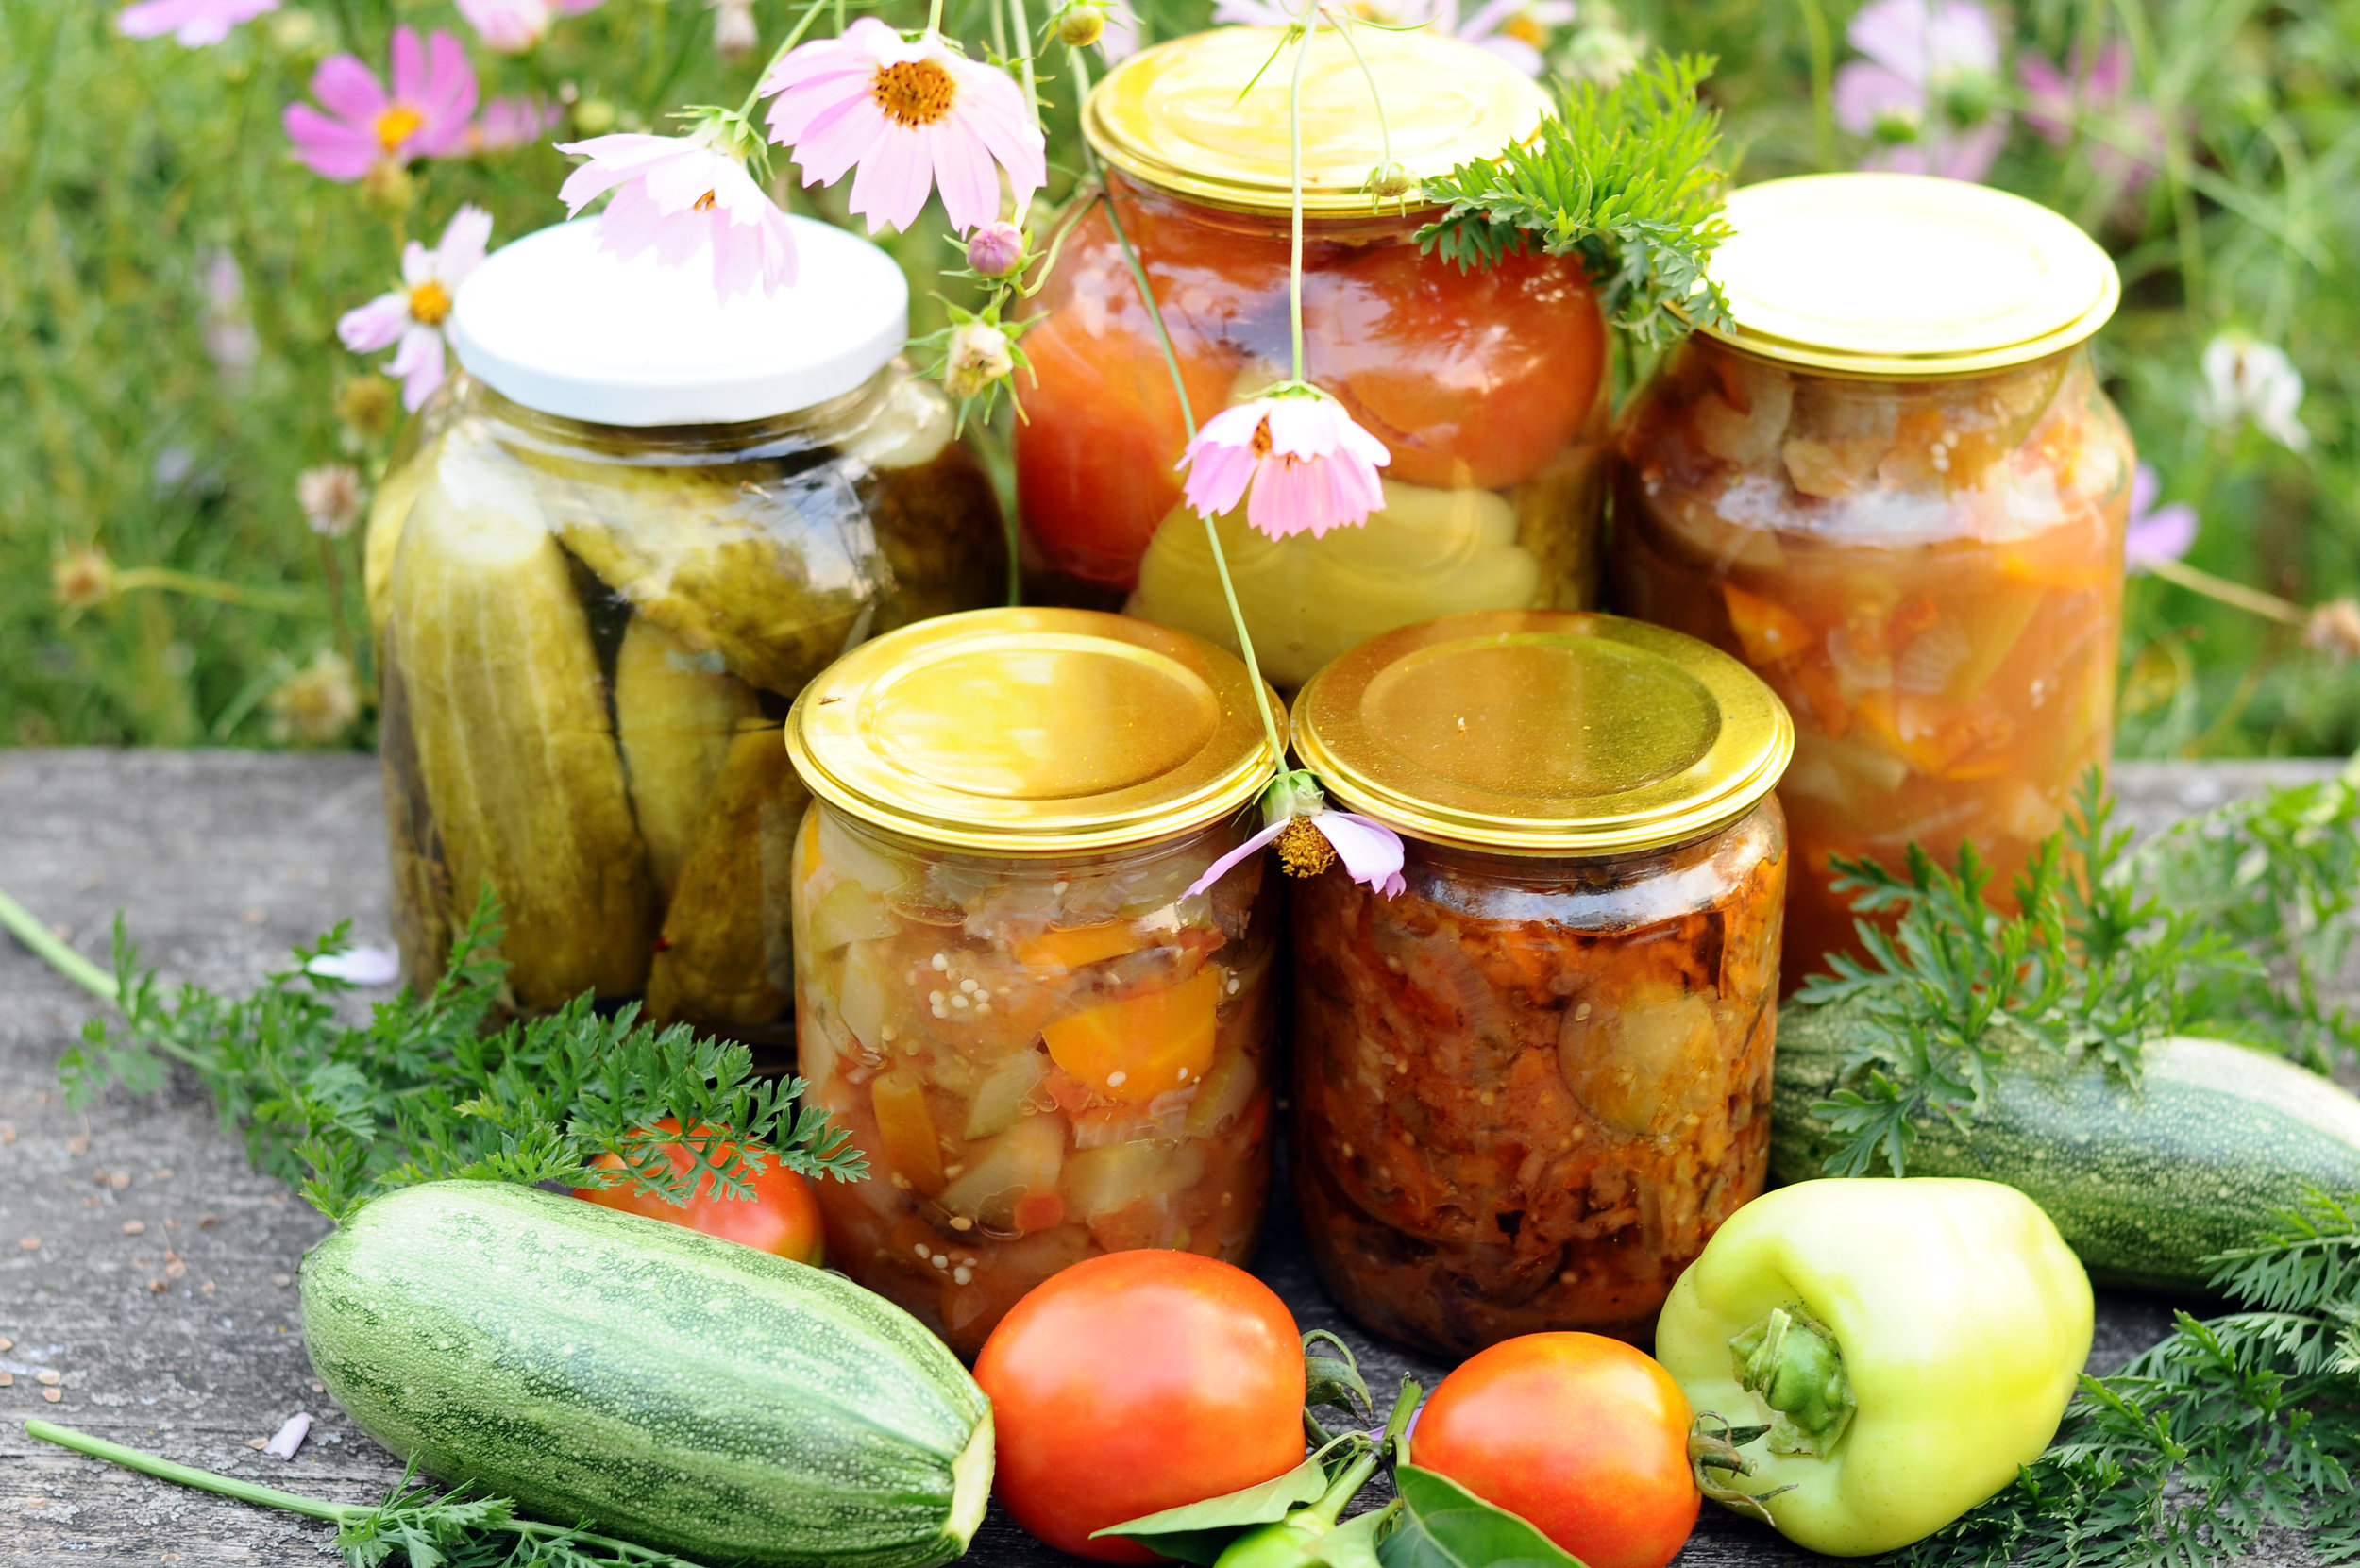 Fermented food preserves the harvest and your health